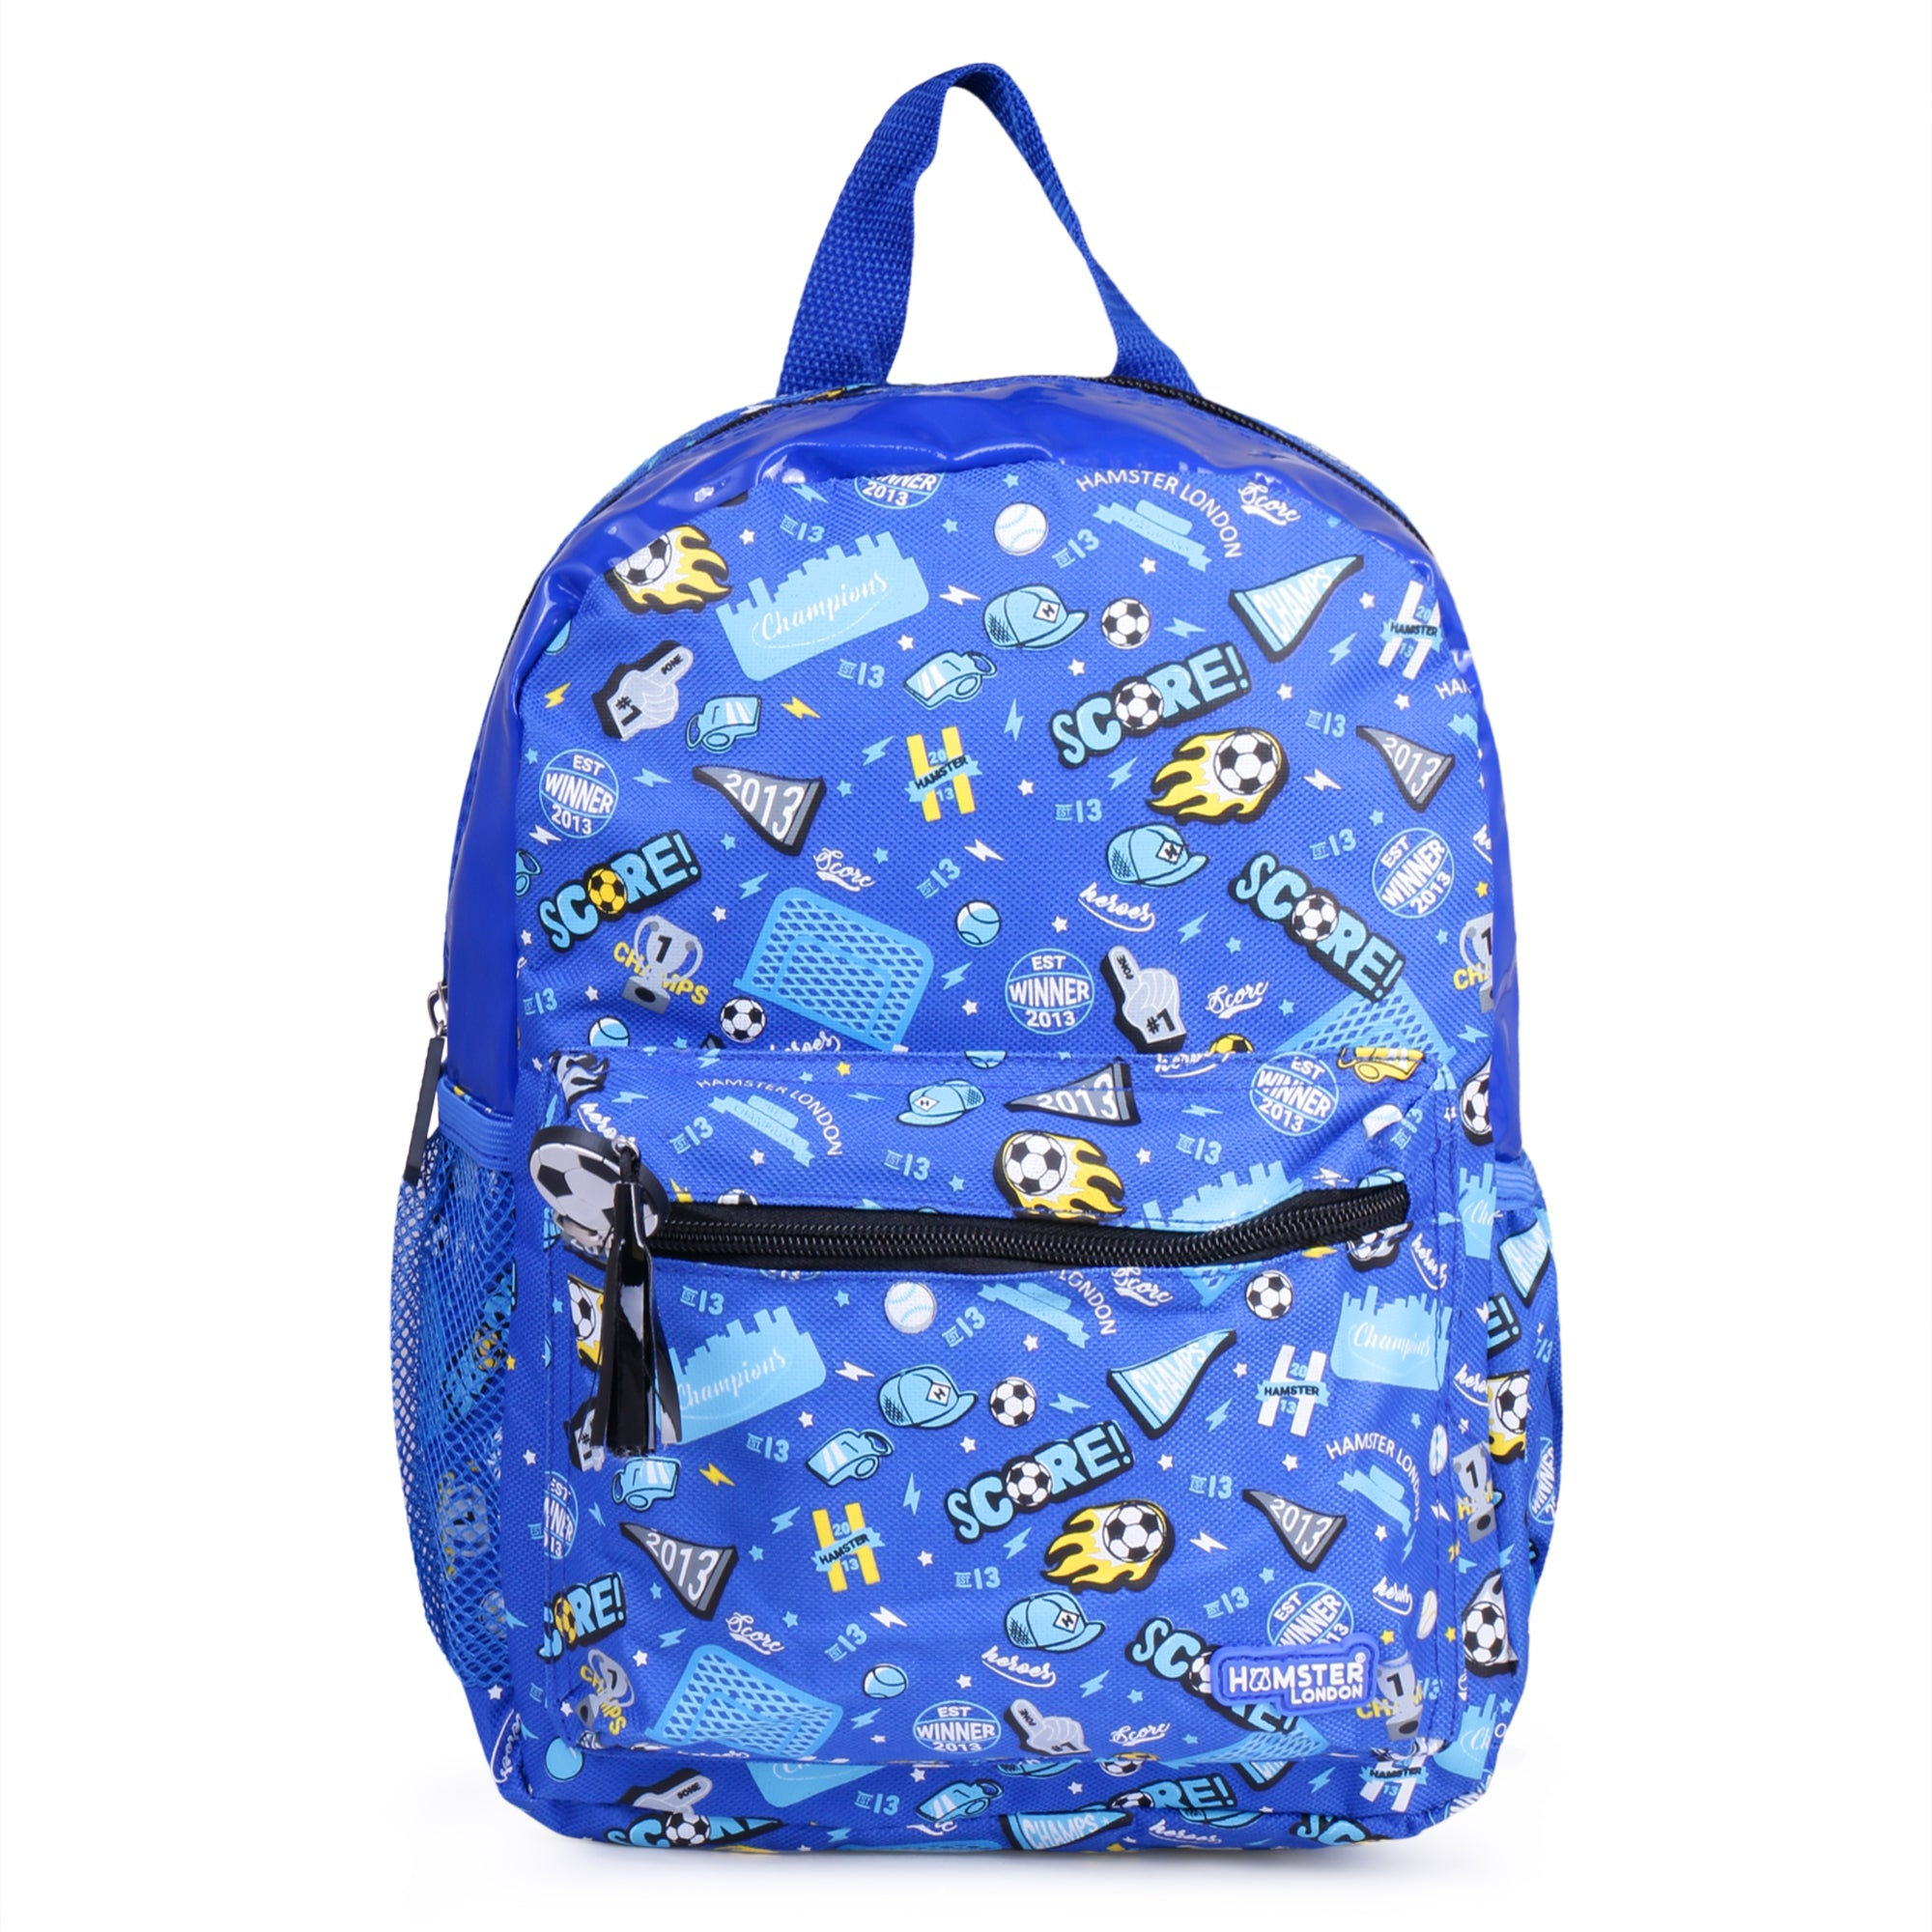 Small Football Backpack For Kids